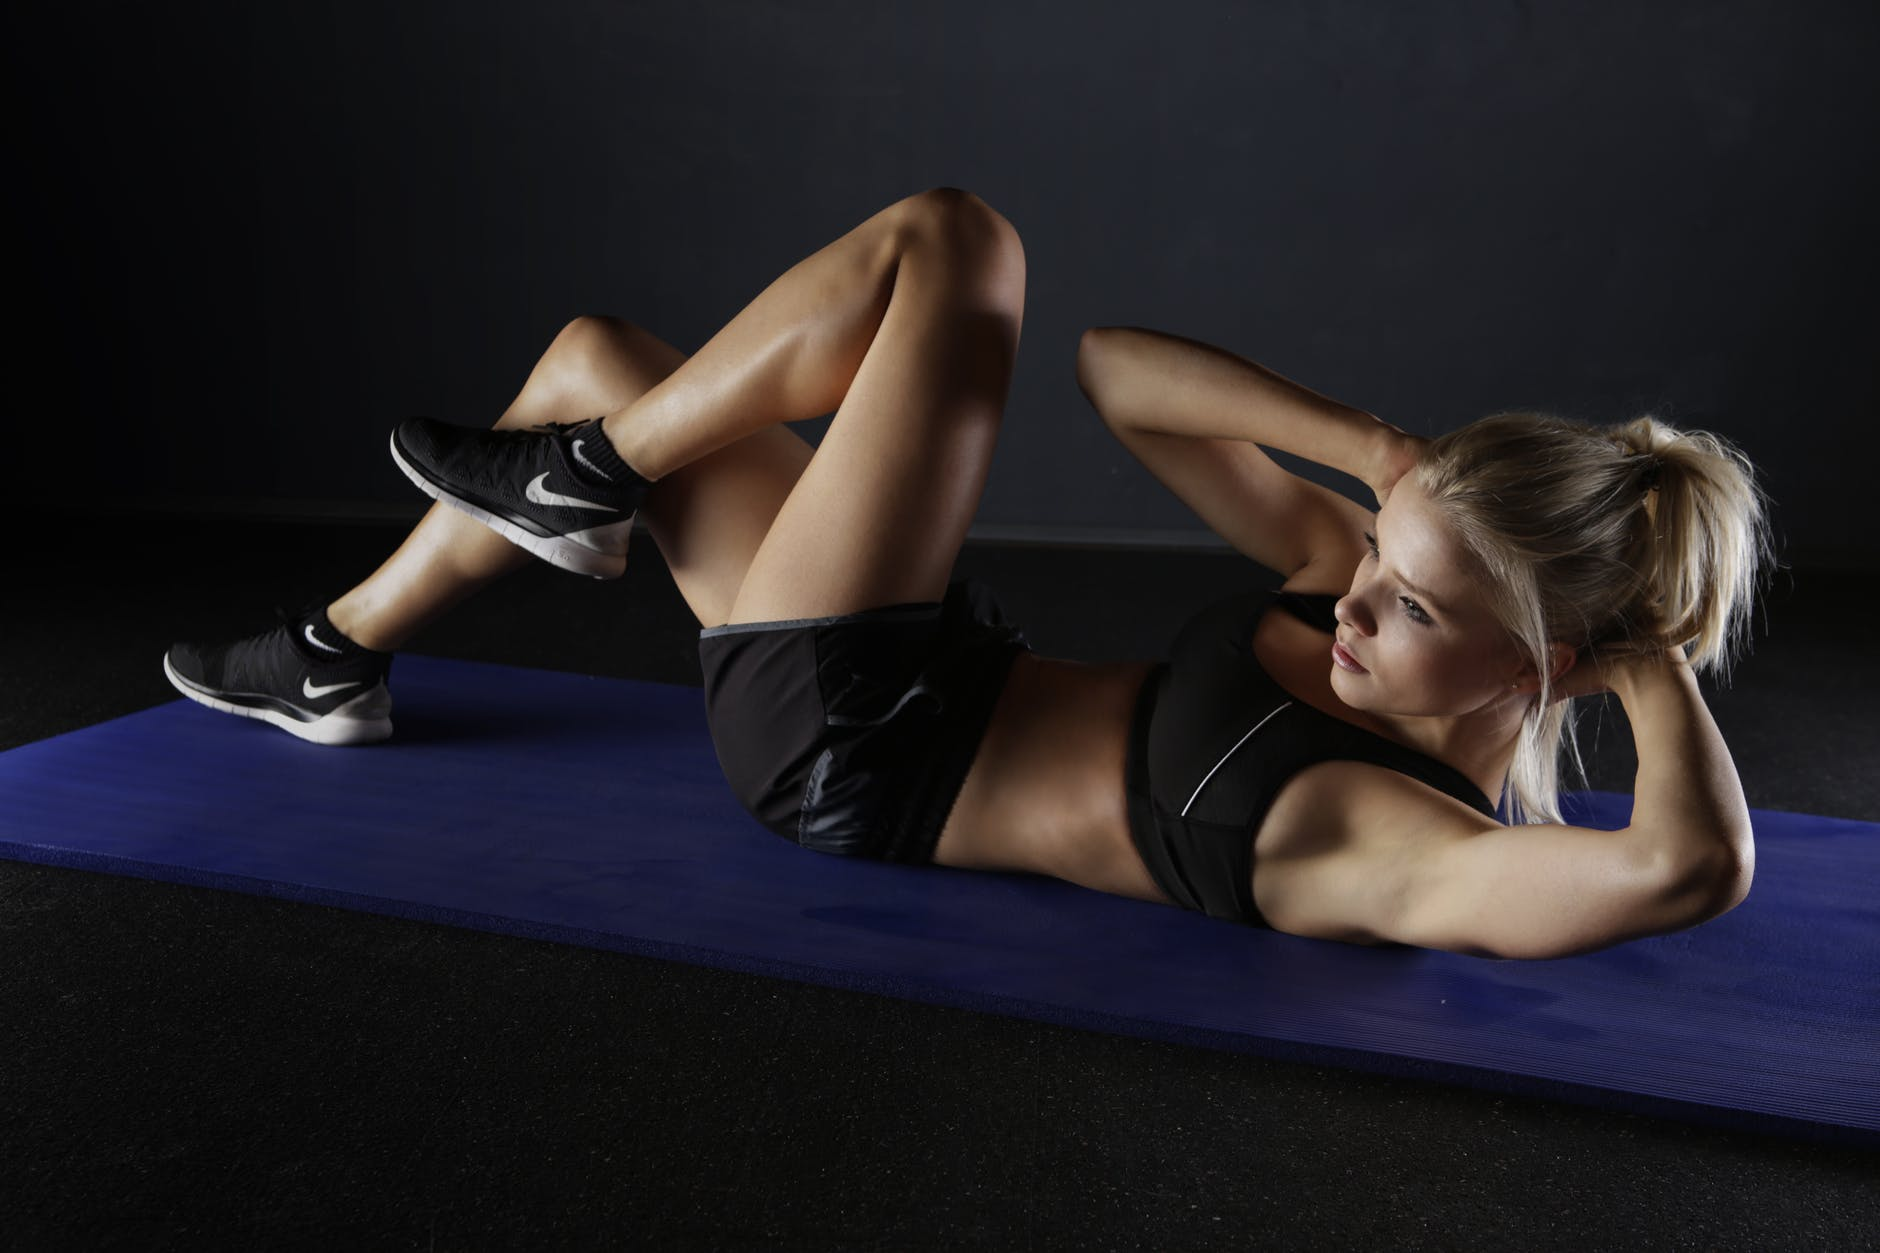 A woman doing bicycle crunches on a yoga matt in a black sports bra and shorts, and black nike trainers.